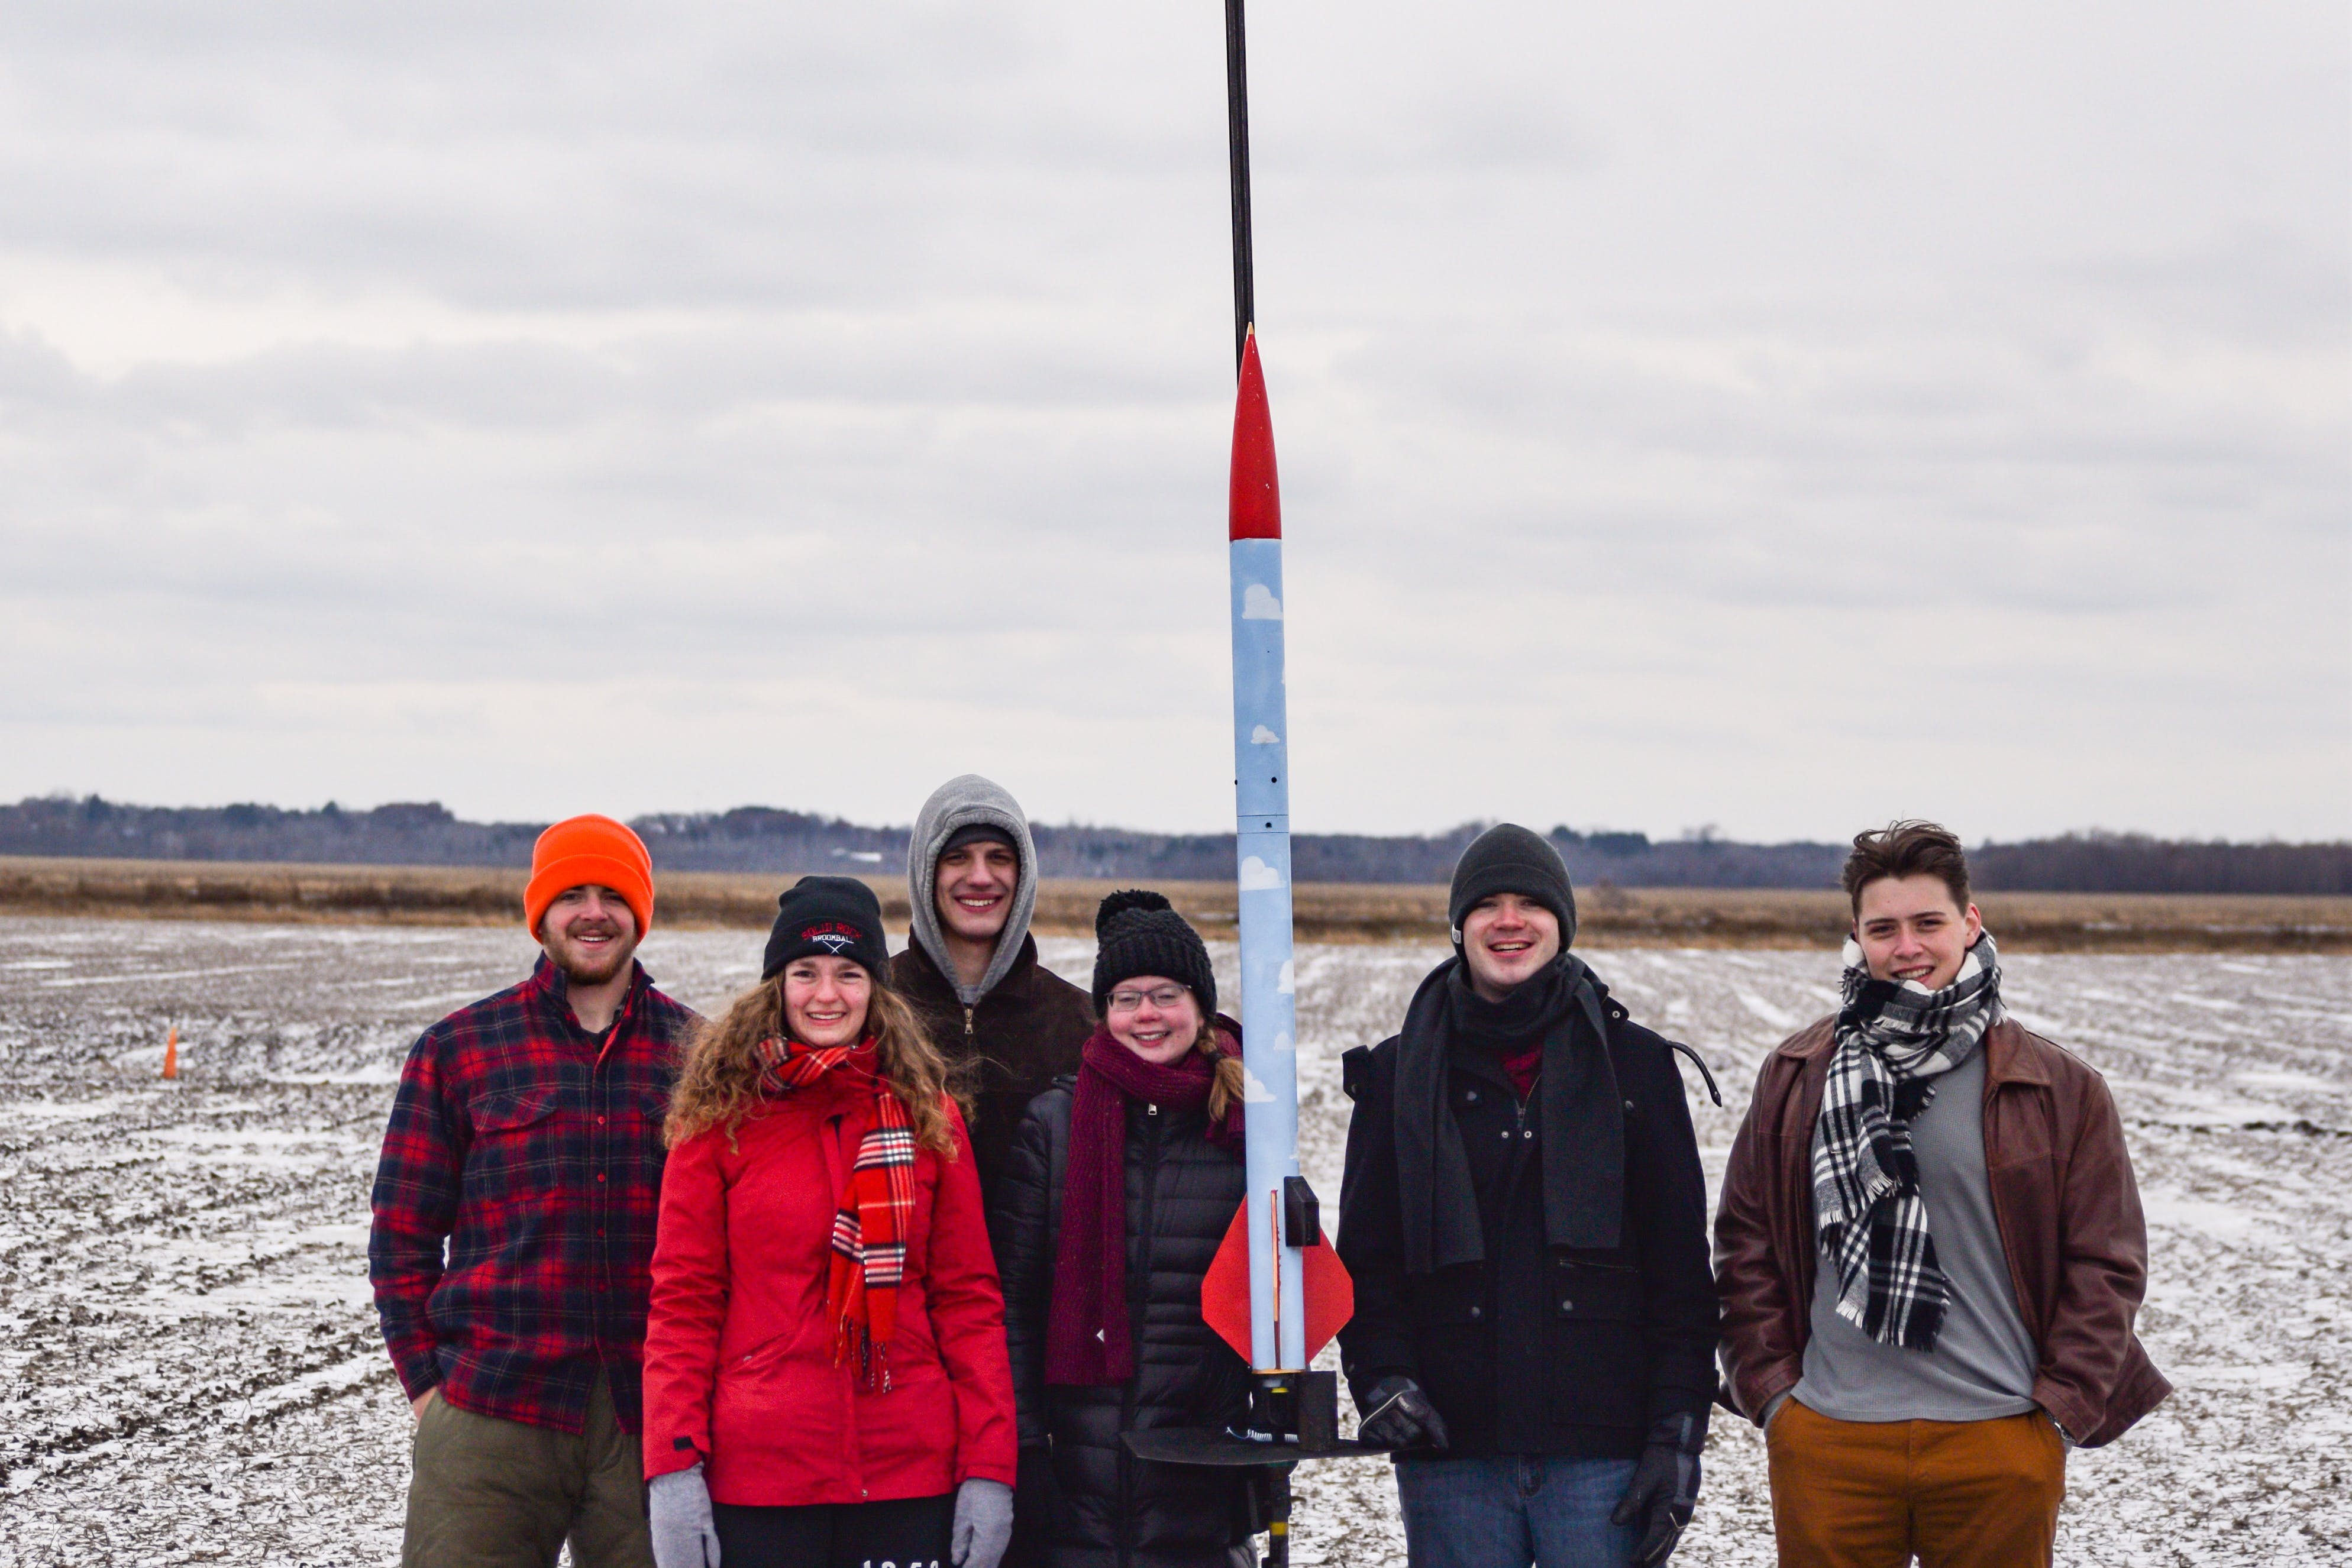 The Rocket Club at their first launch: November 2018 in North Branch, Minnesota